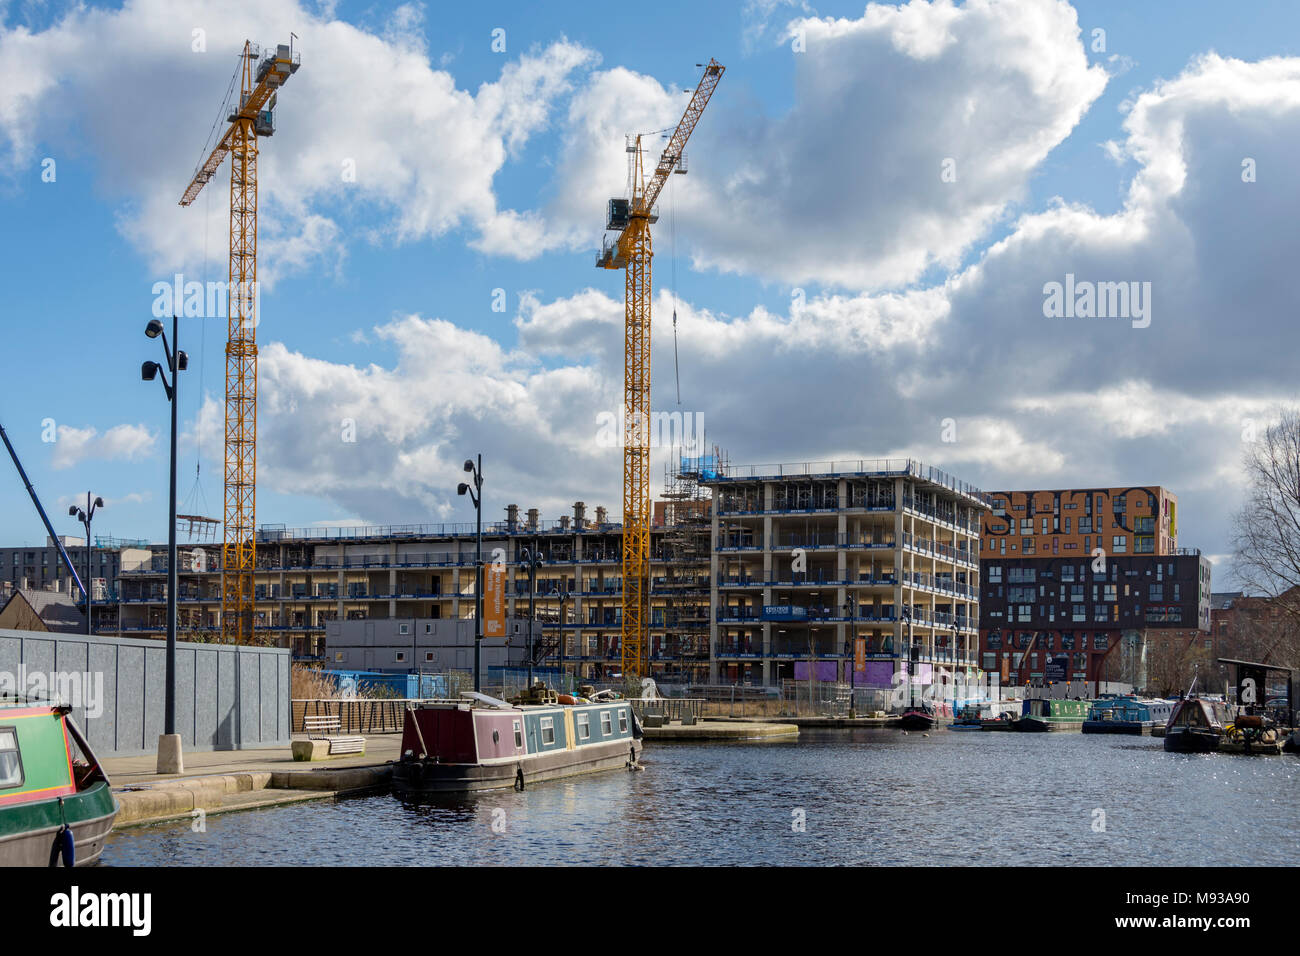 The Weavers Quay apartments blocks under construction, from Cotton Field Park, New Islington, Ancoats, Manchester, England, UK - Stock Image